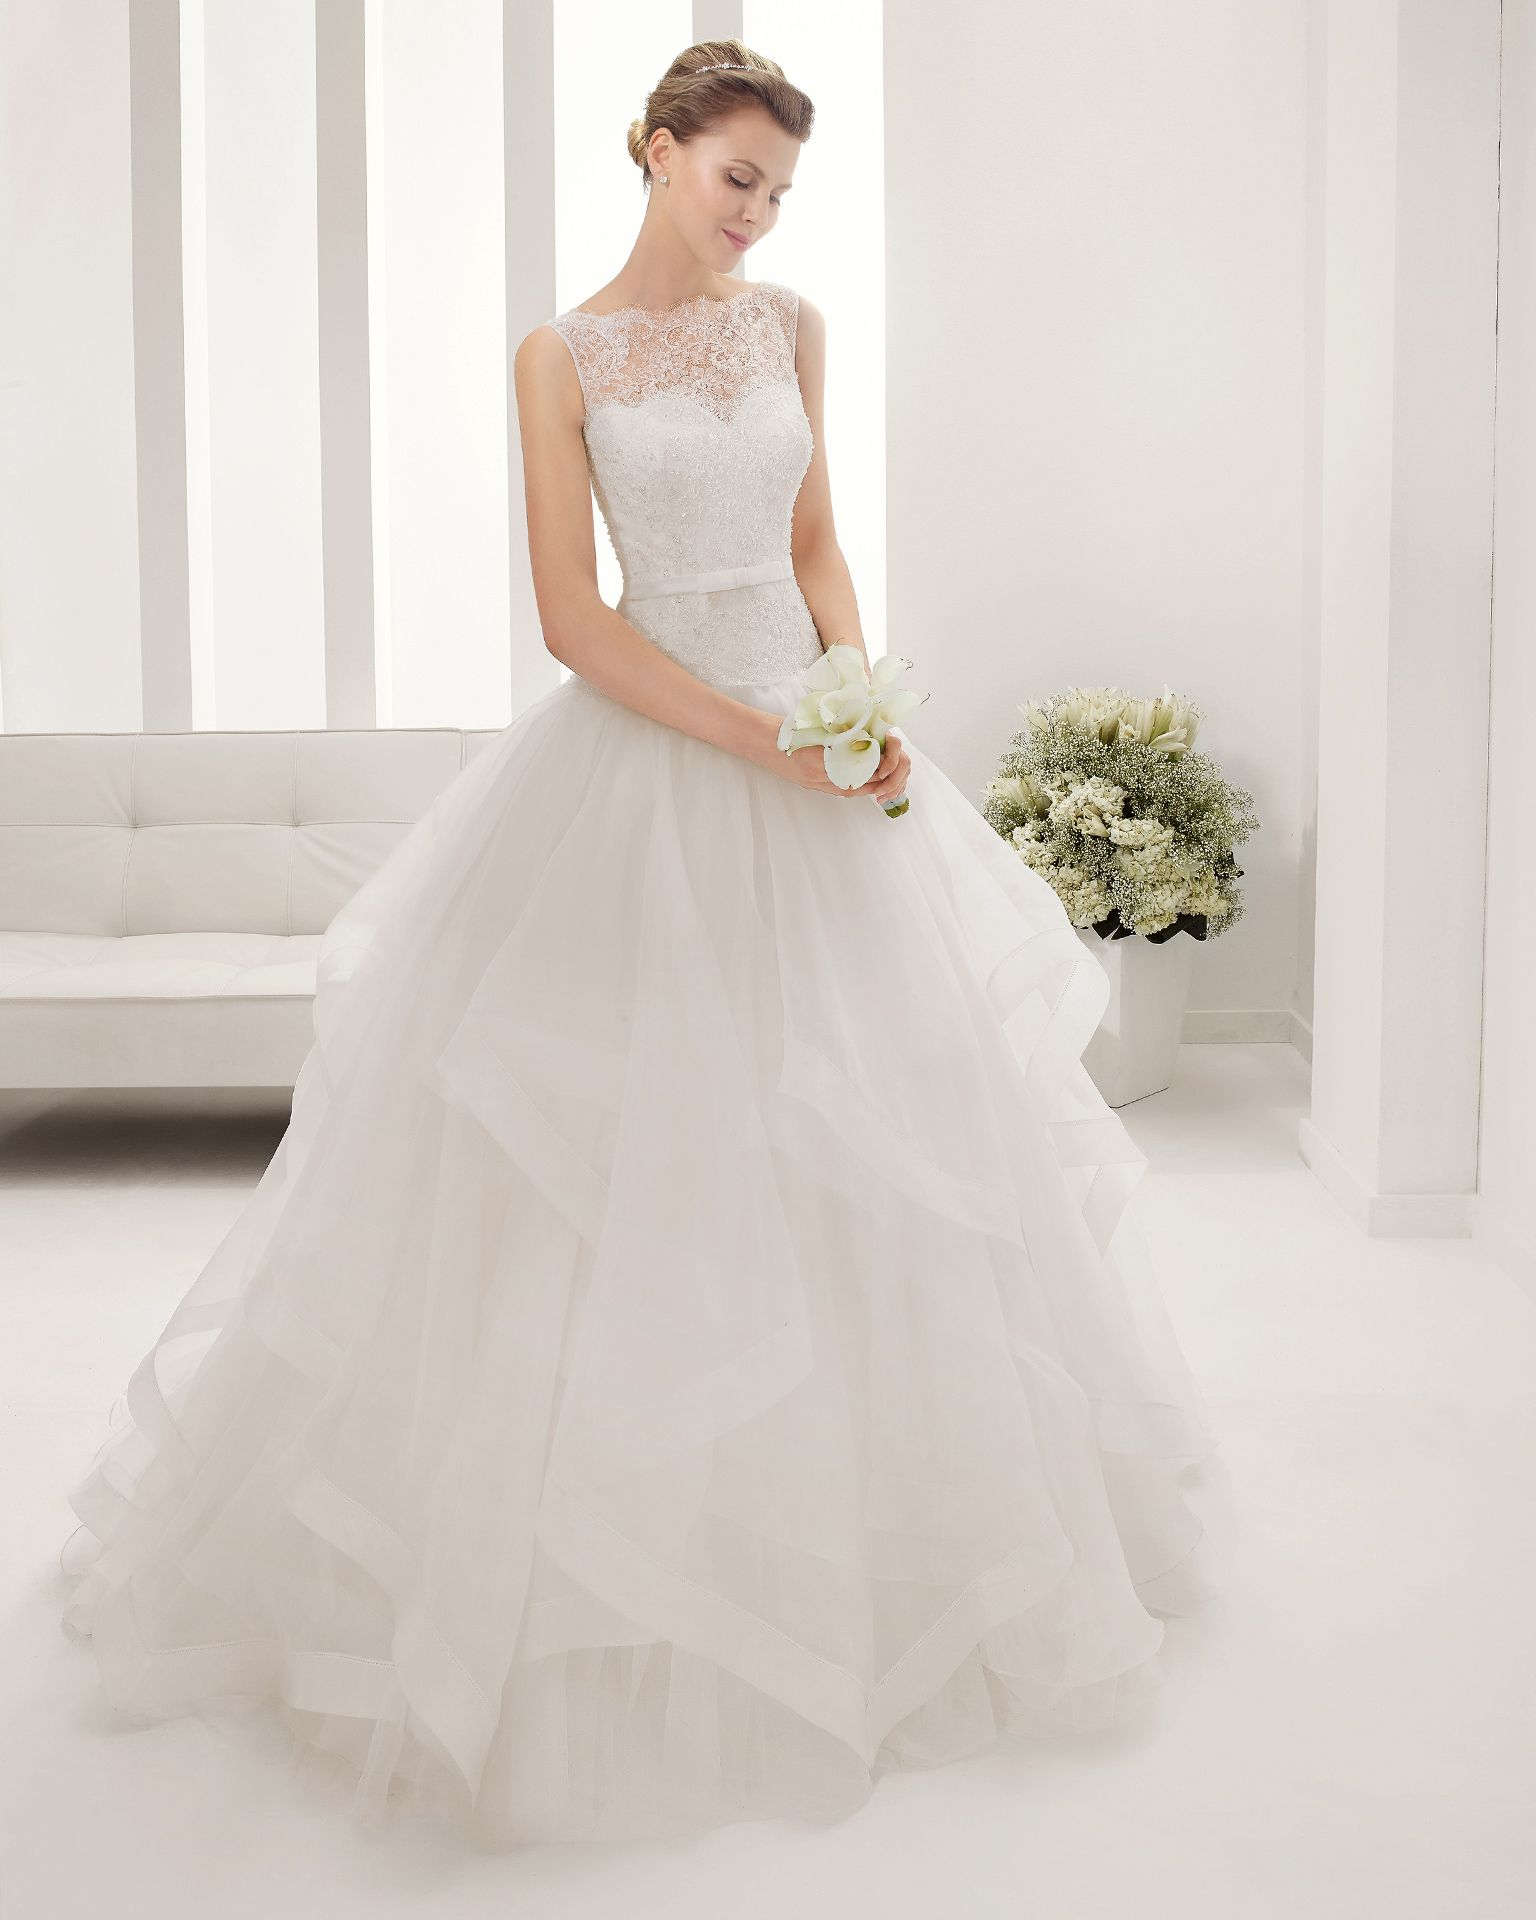 Pleated wedding dress  B PRATO  Wedding Dresses   Collection  Alma Novia  Some